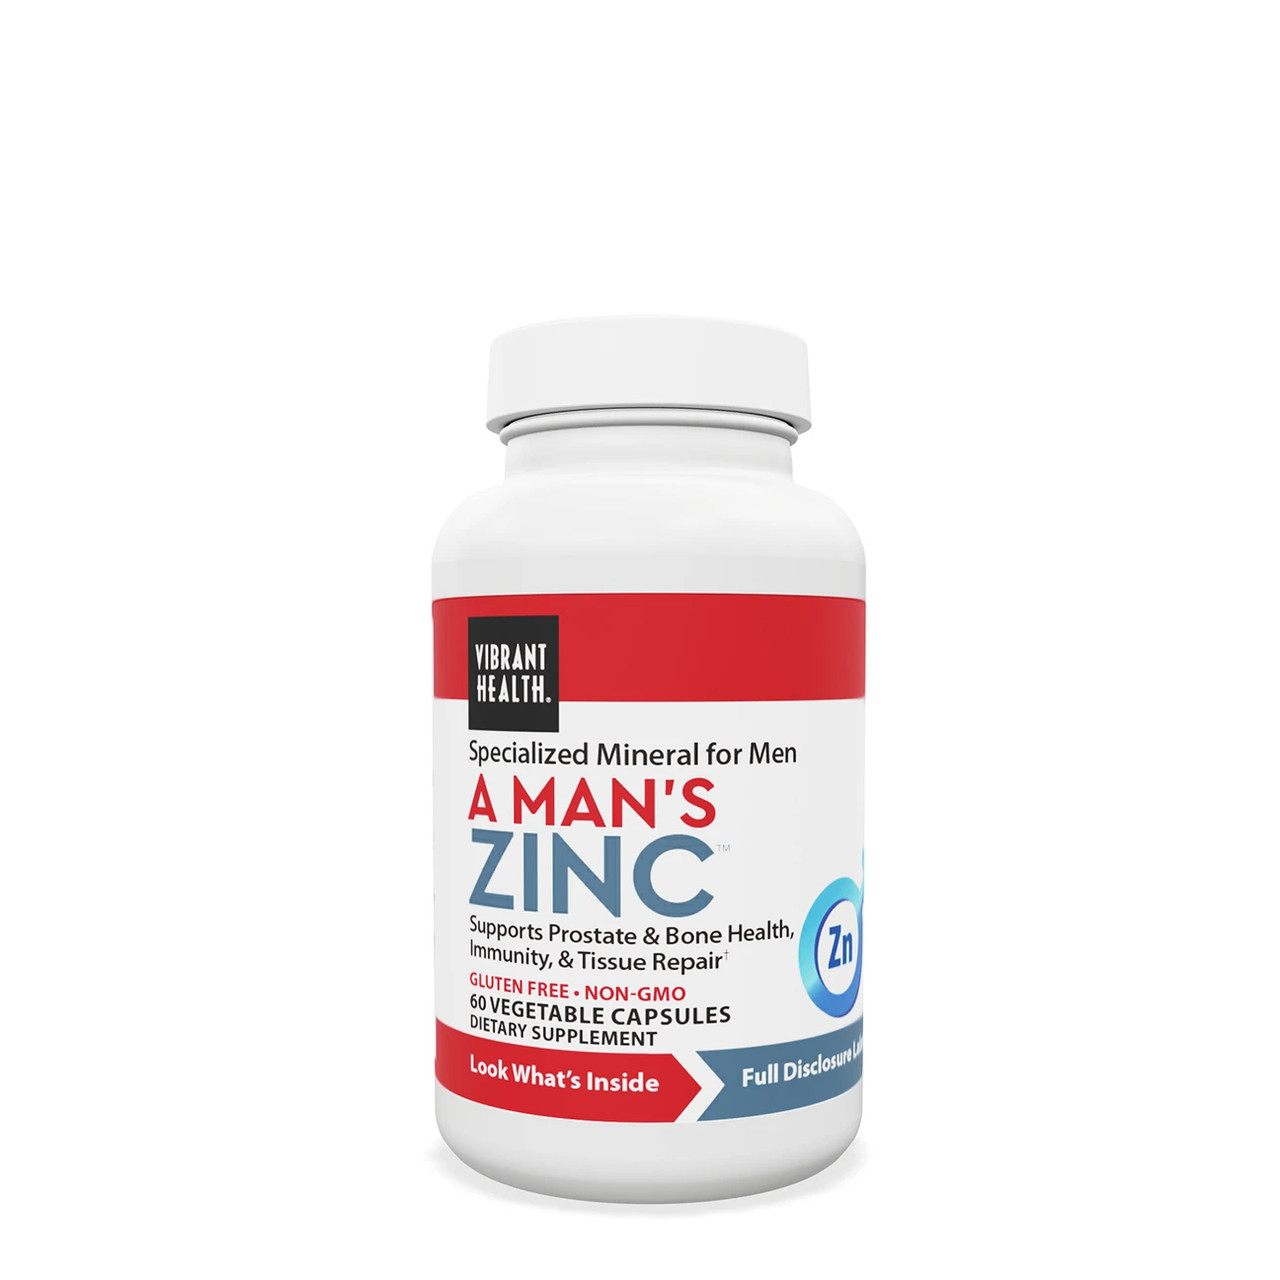 VIBRANT HEALTH® A Man's Zinc - 60 Capsules - An ideal supplement for prostate health